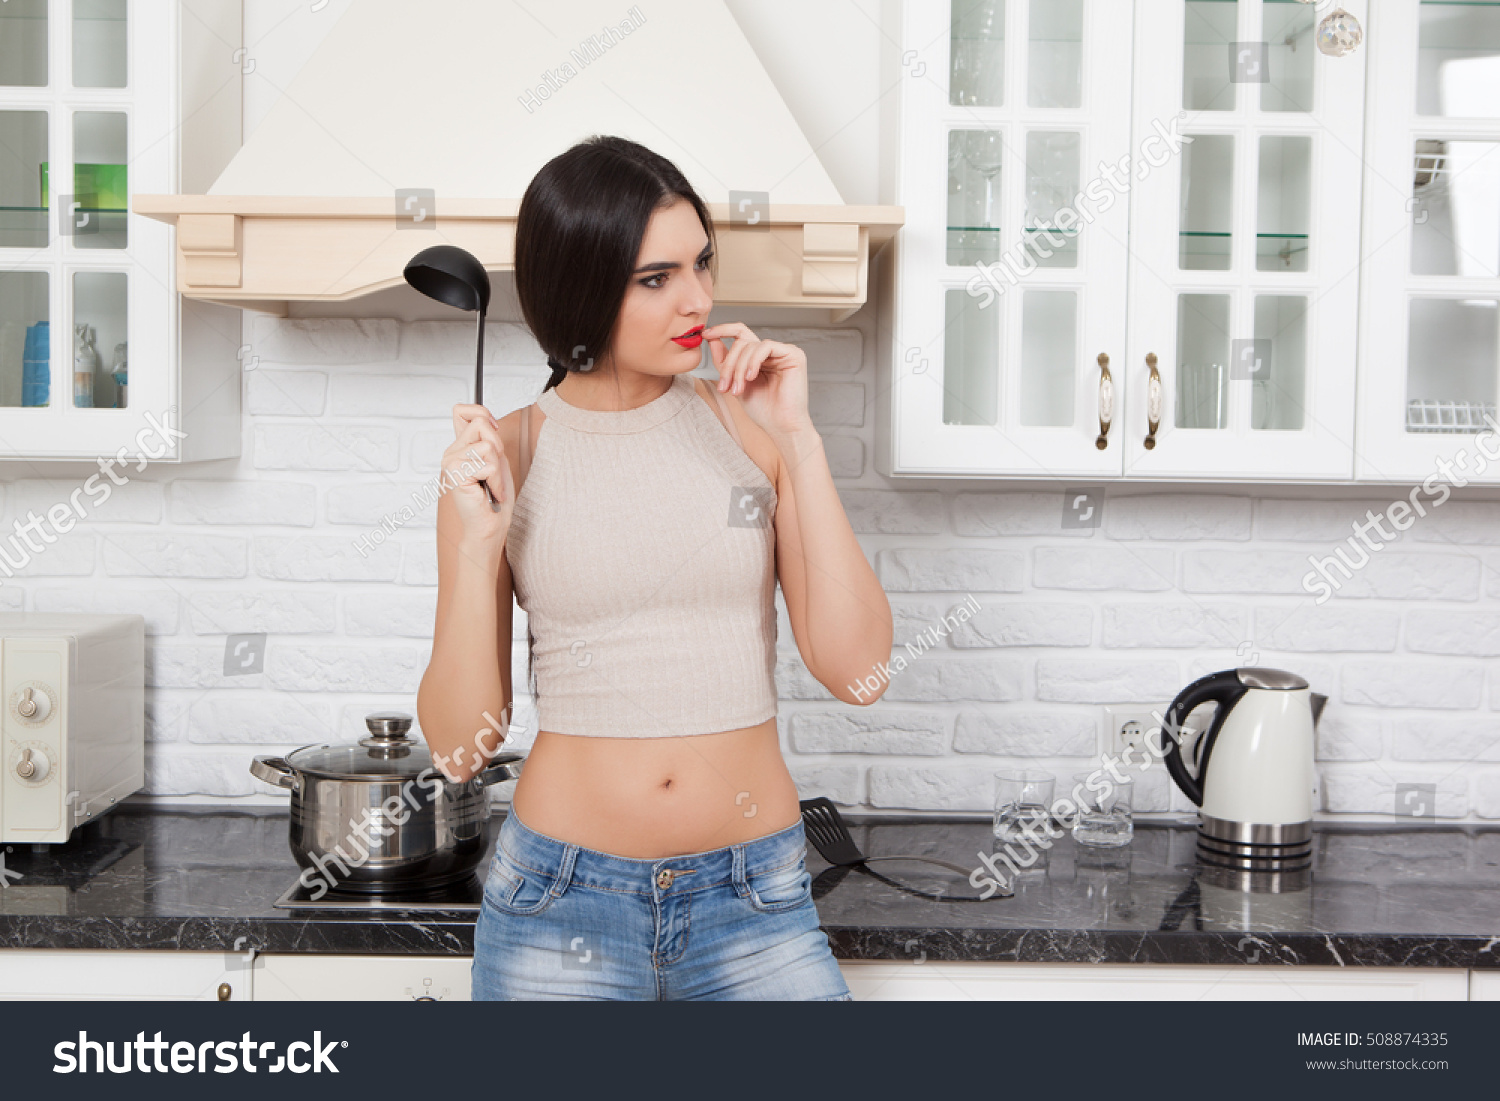 Young girl kitchen good, agree